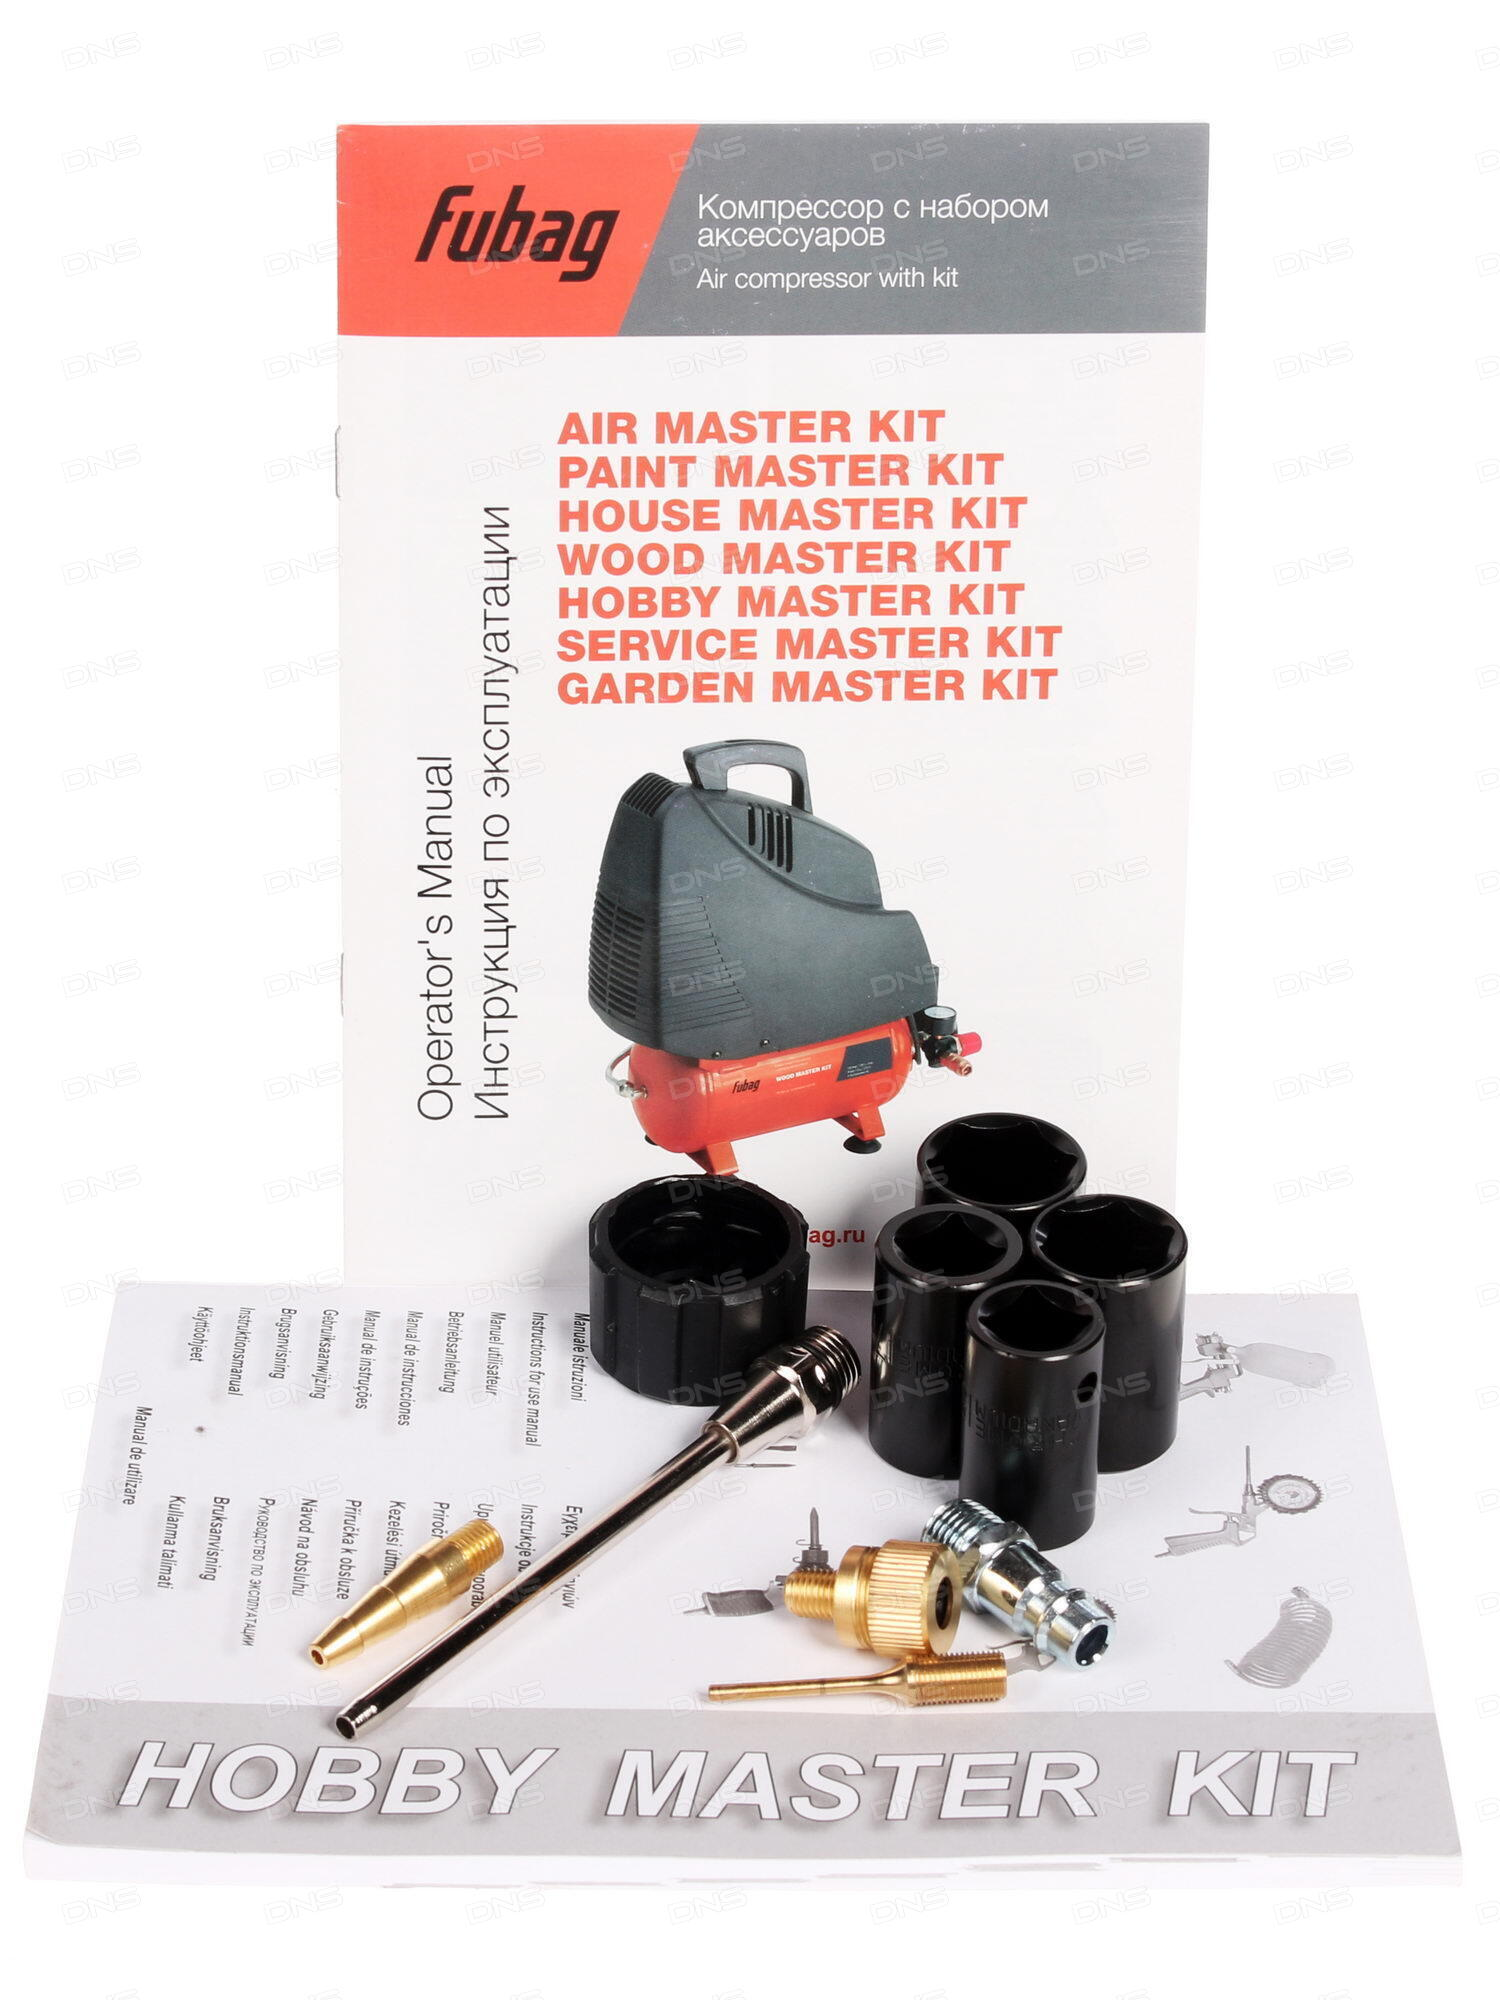 Master airbrush compressor features and specifications